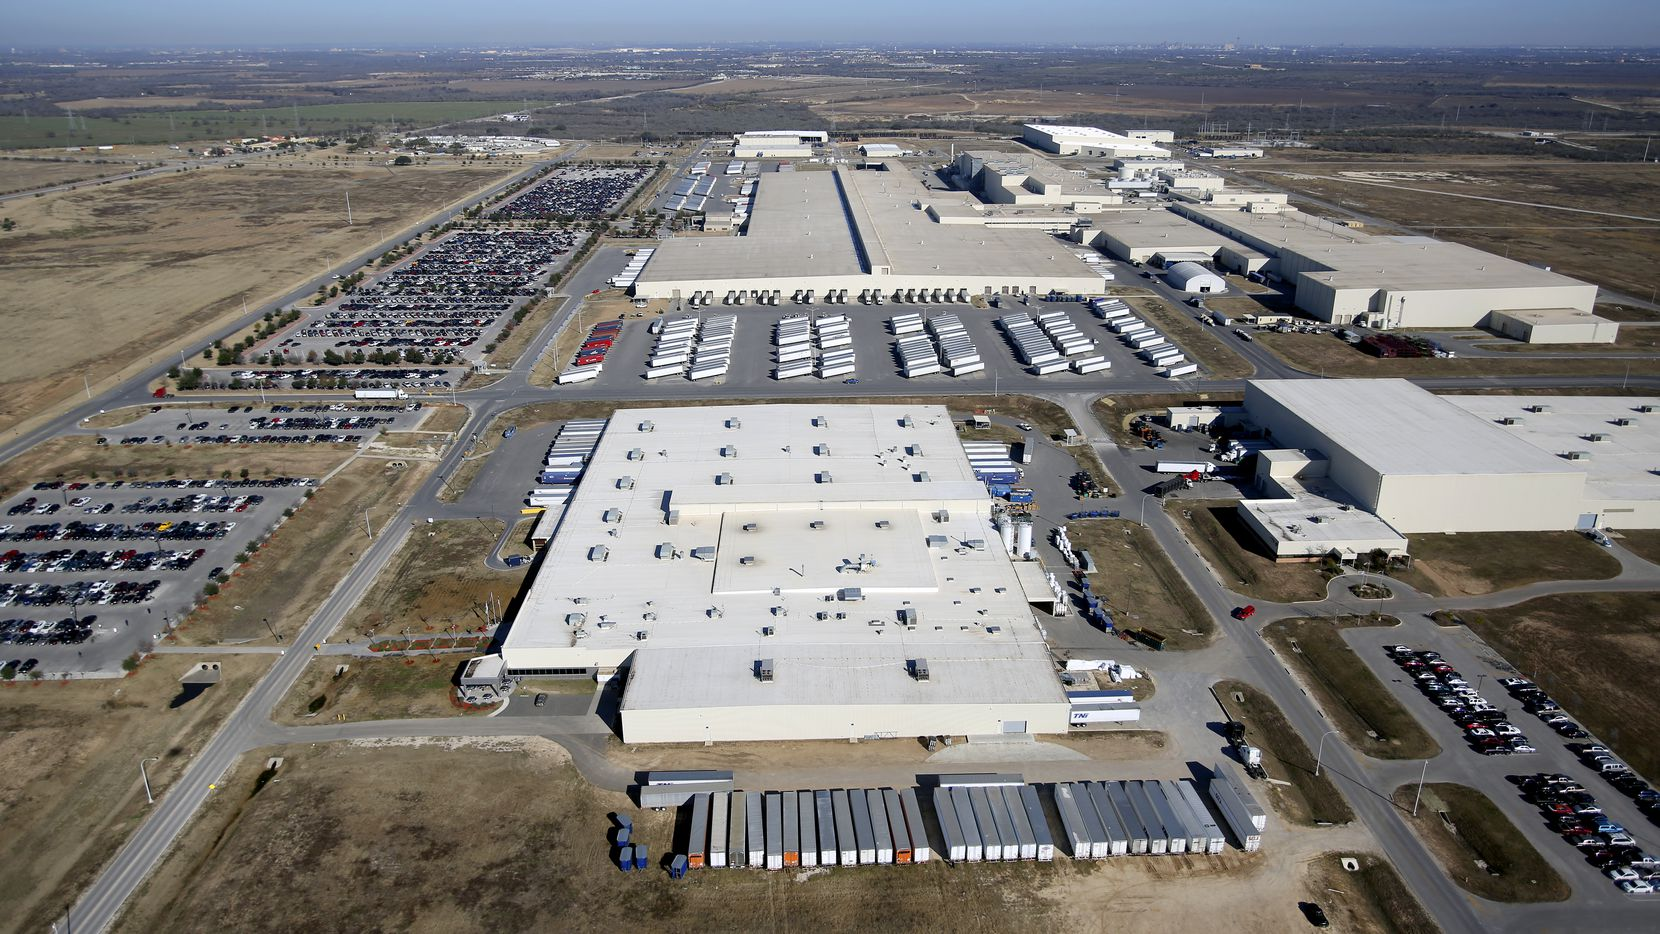 Toyota's truck plant in south Bexar County builds Tundra and Tacoma pickup trucks.